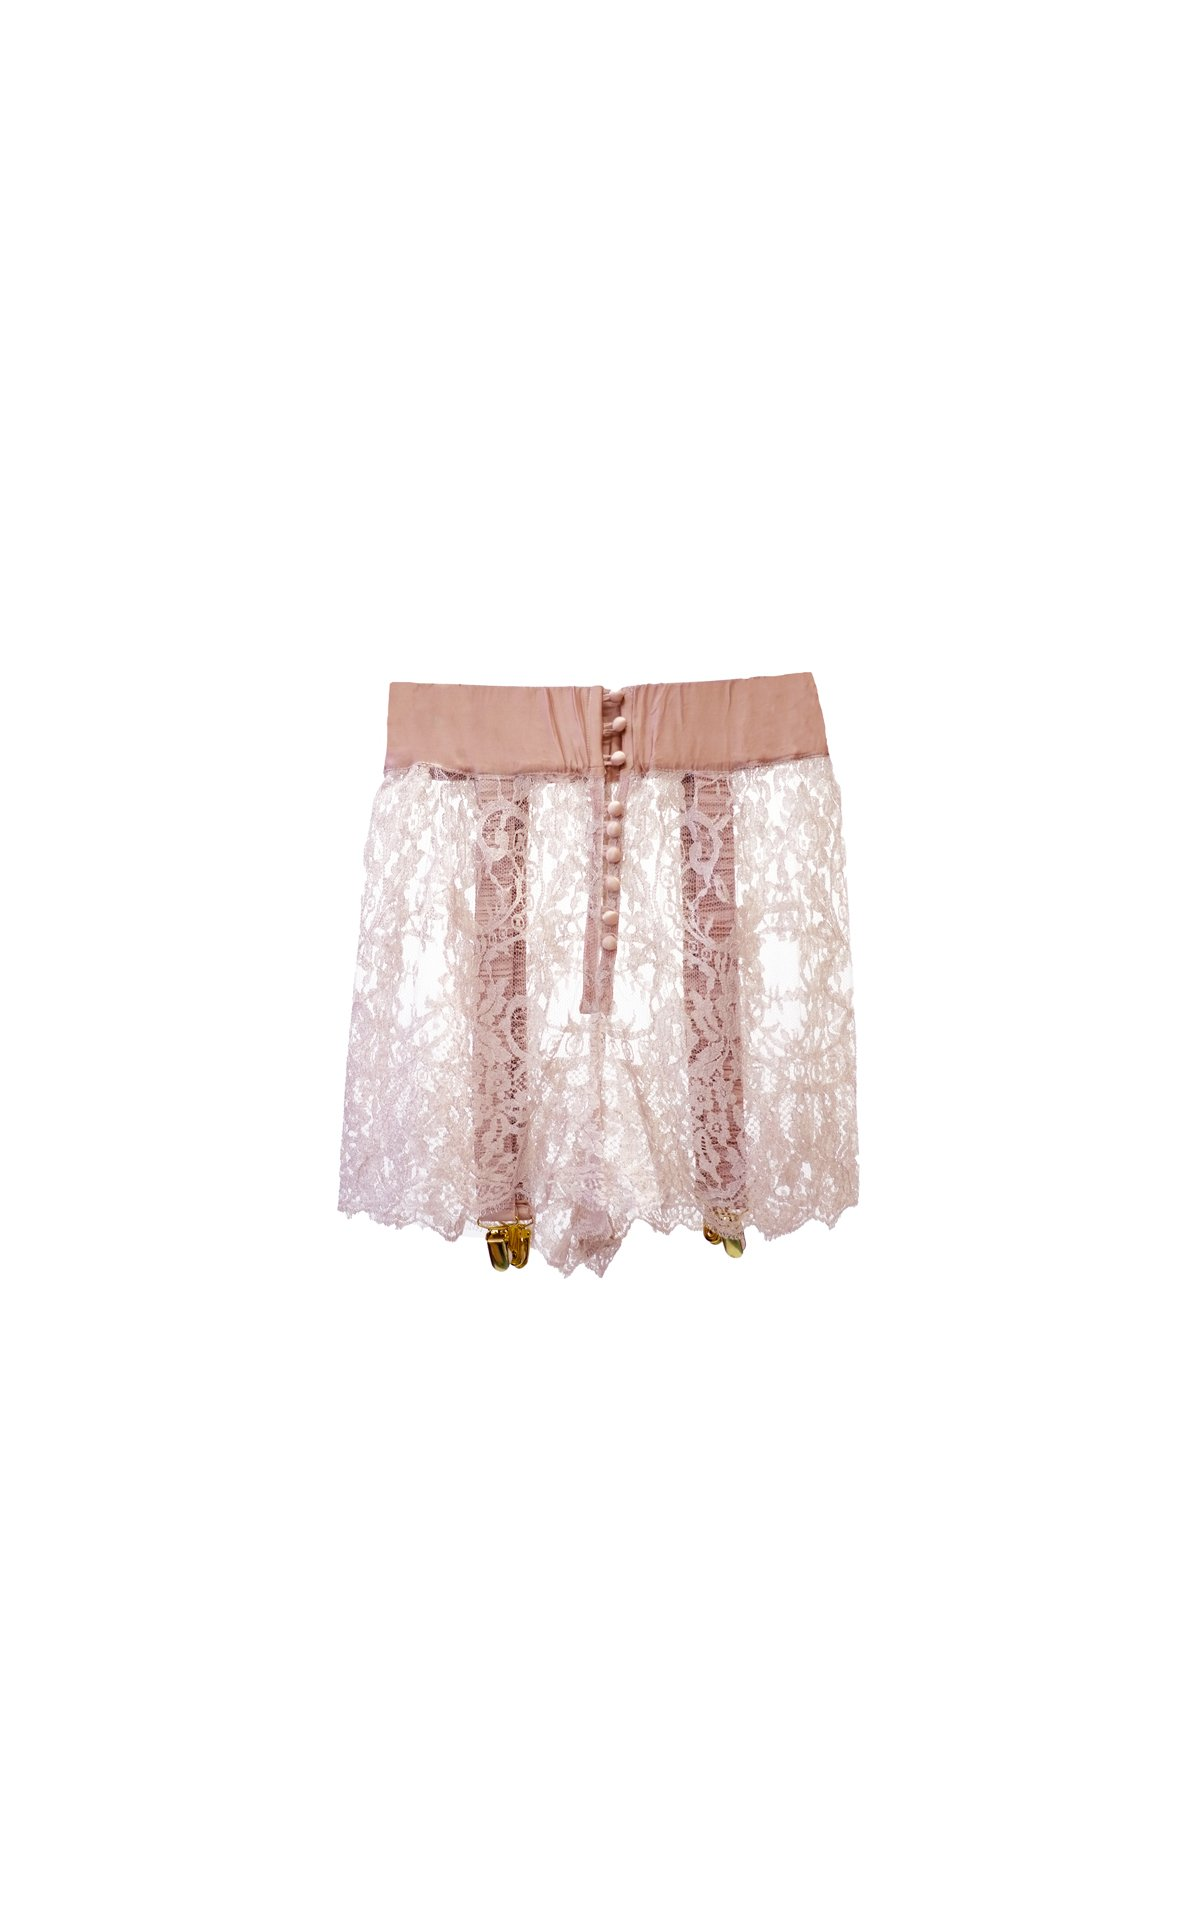 Rosamosario_LOVISSIMO_Couture_Boxers_with_Garter_Belts_front